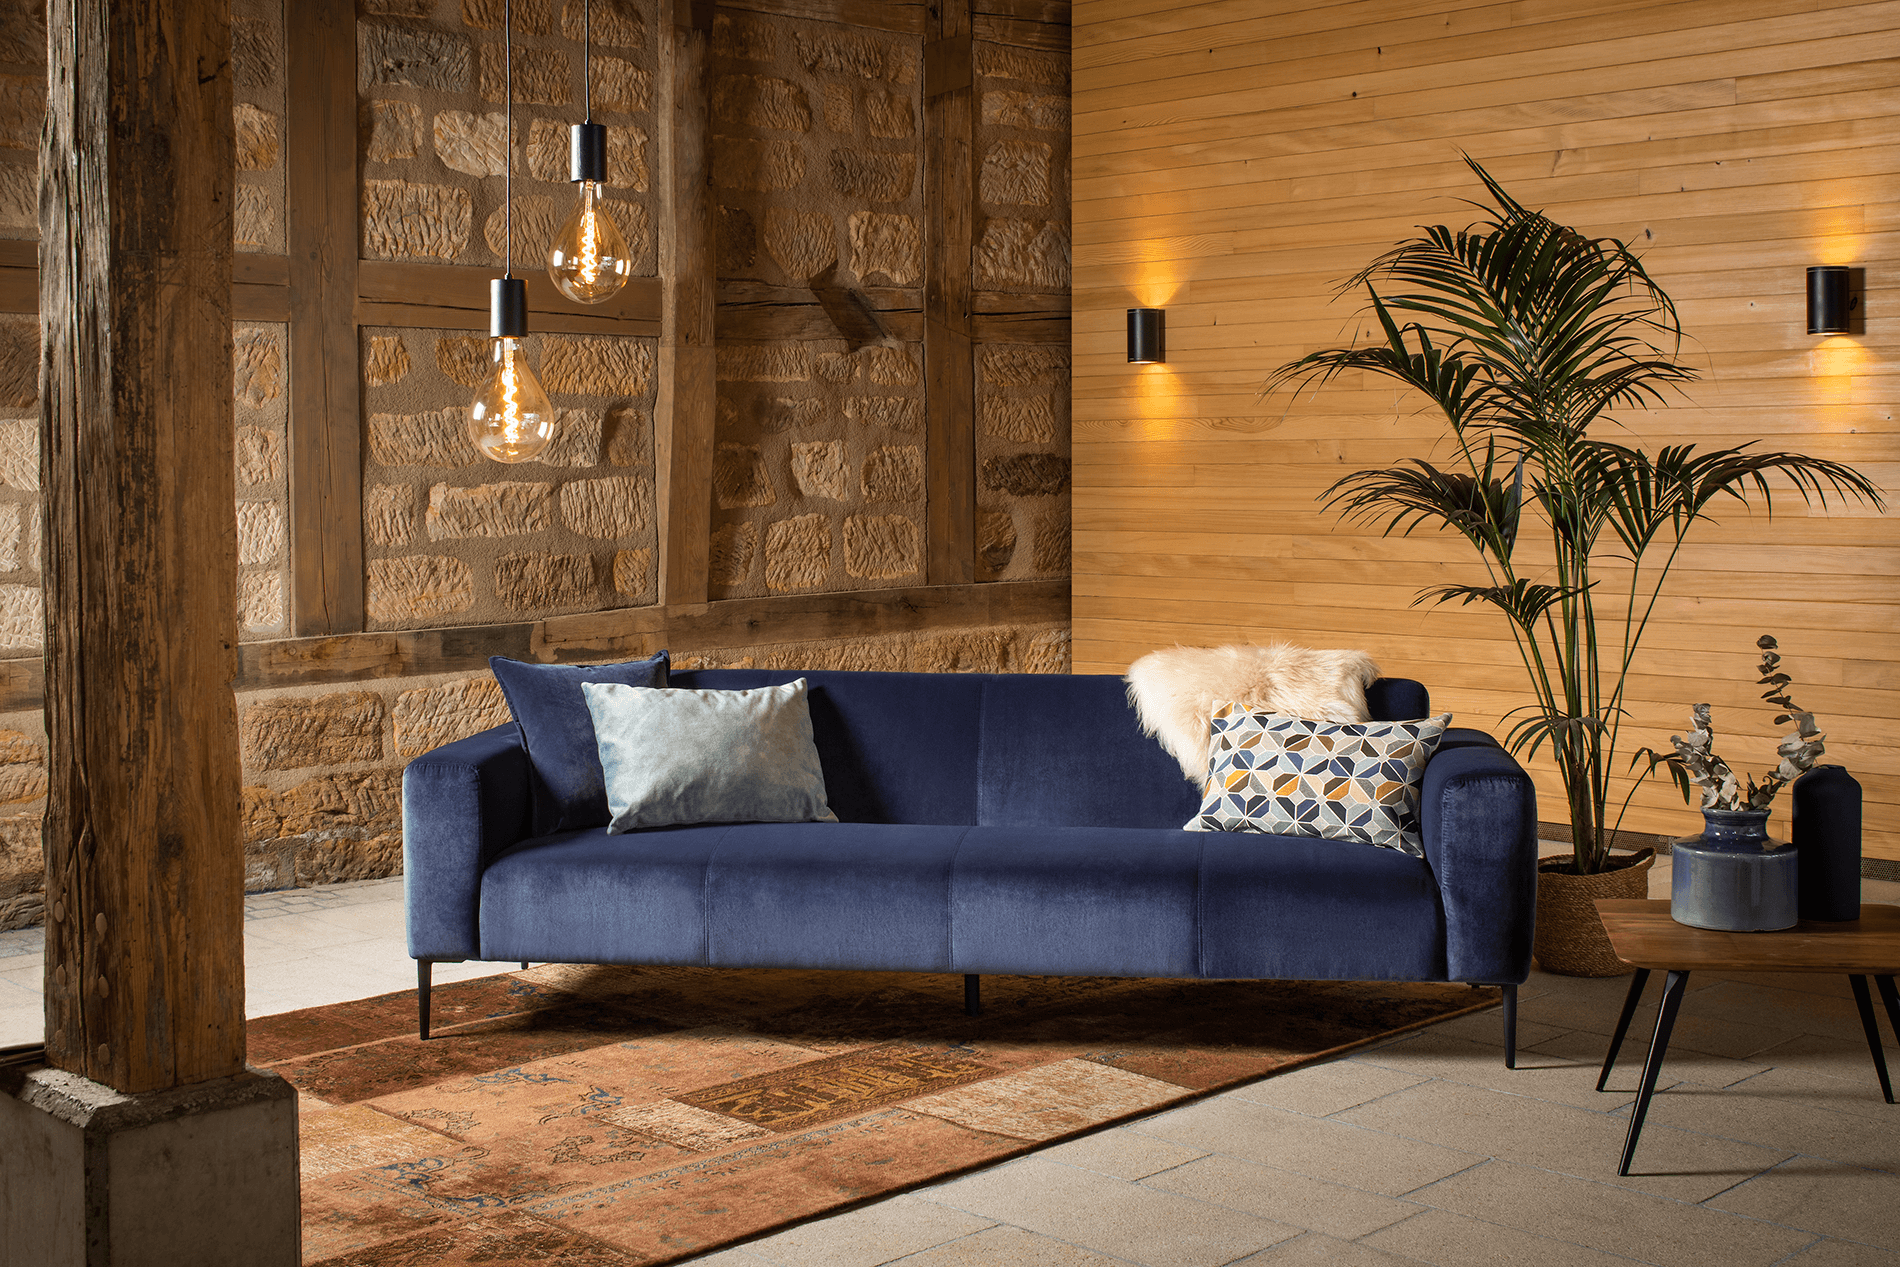 15360 nobility Couch